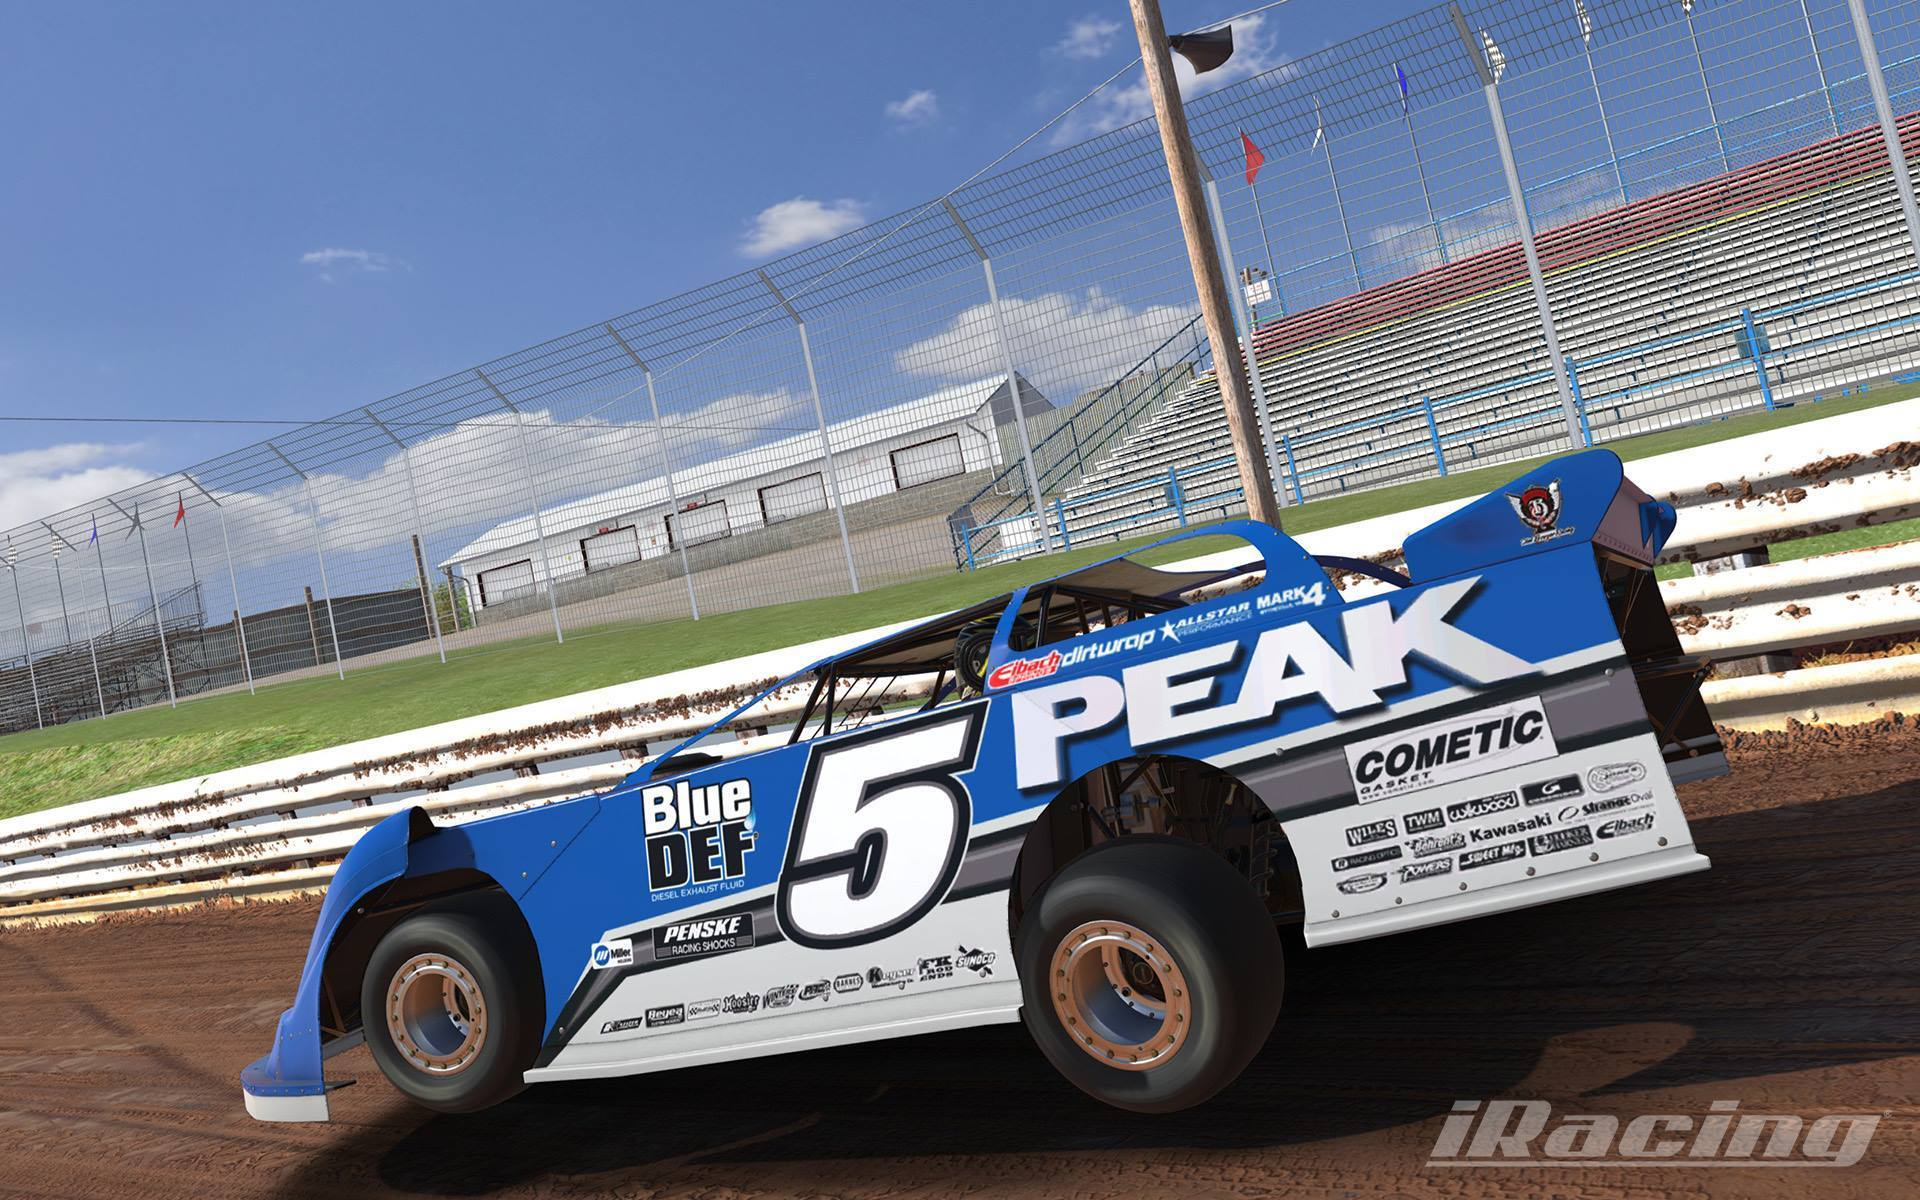 iRacing Teases Dirt Driving in Newest Screenshot